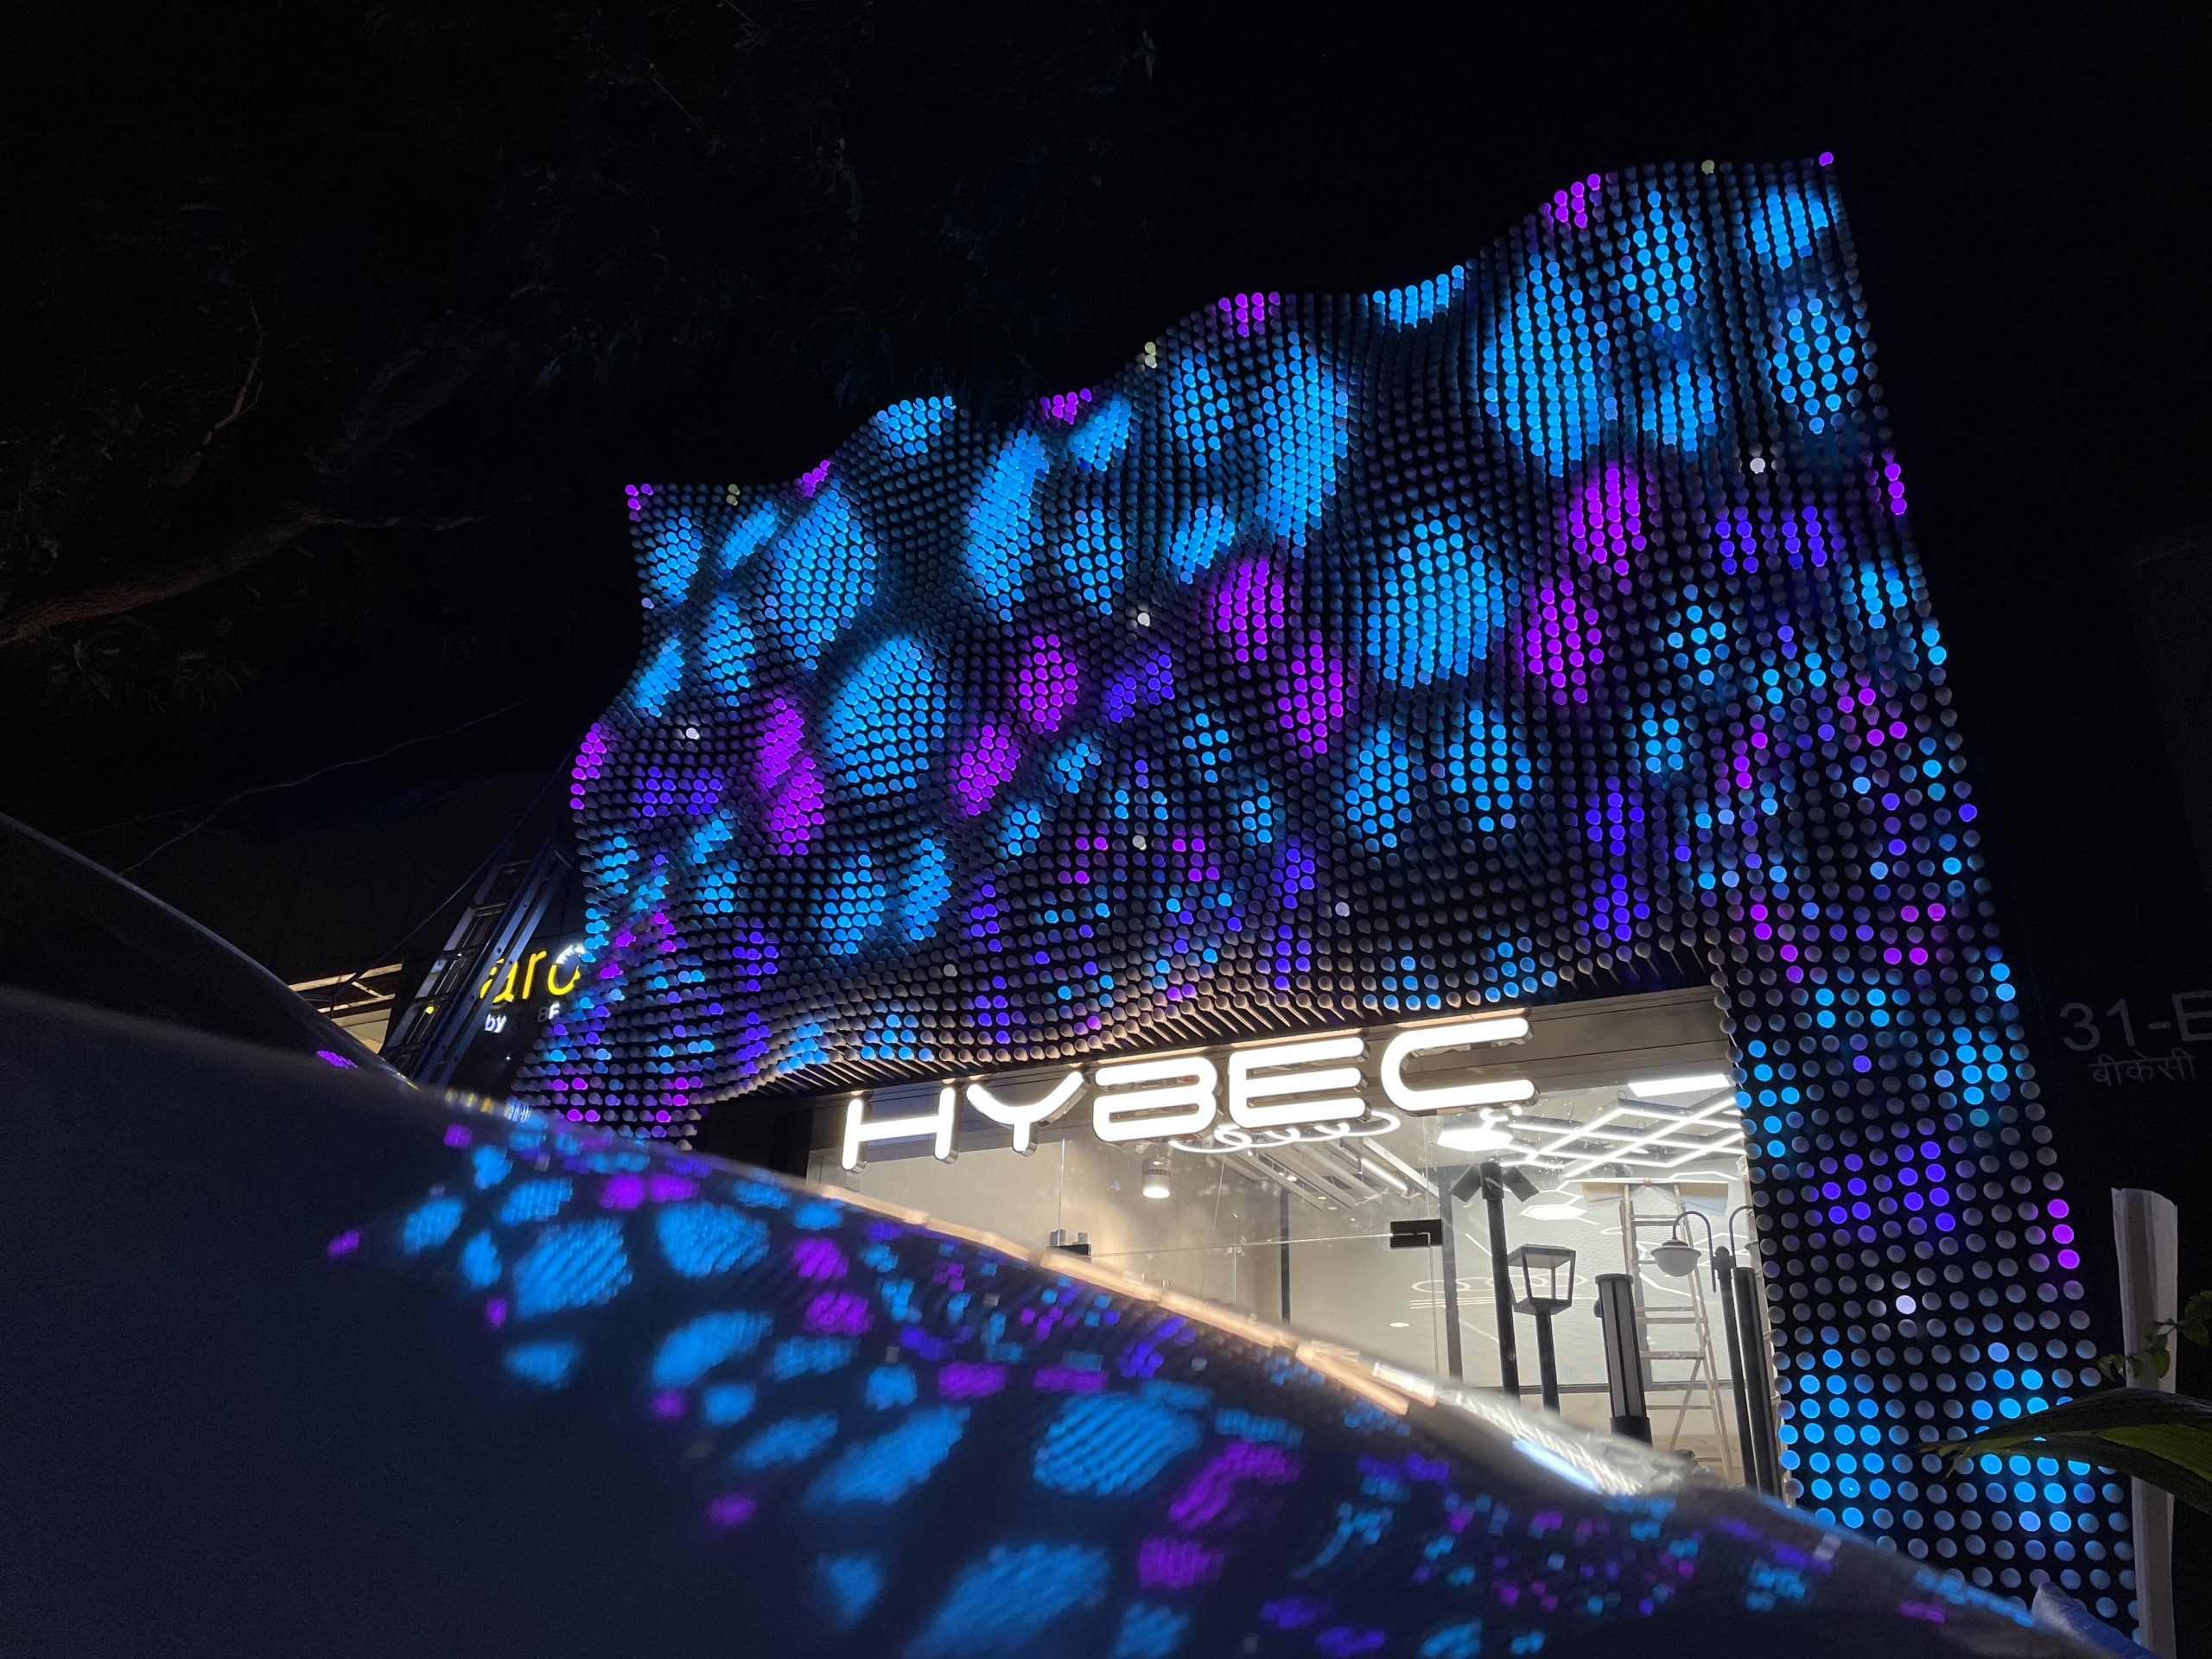 Hybec Lighting store facade in Mumbai is lit by 6,000 3d printed light bulbs